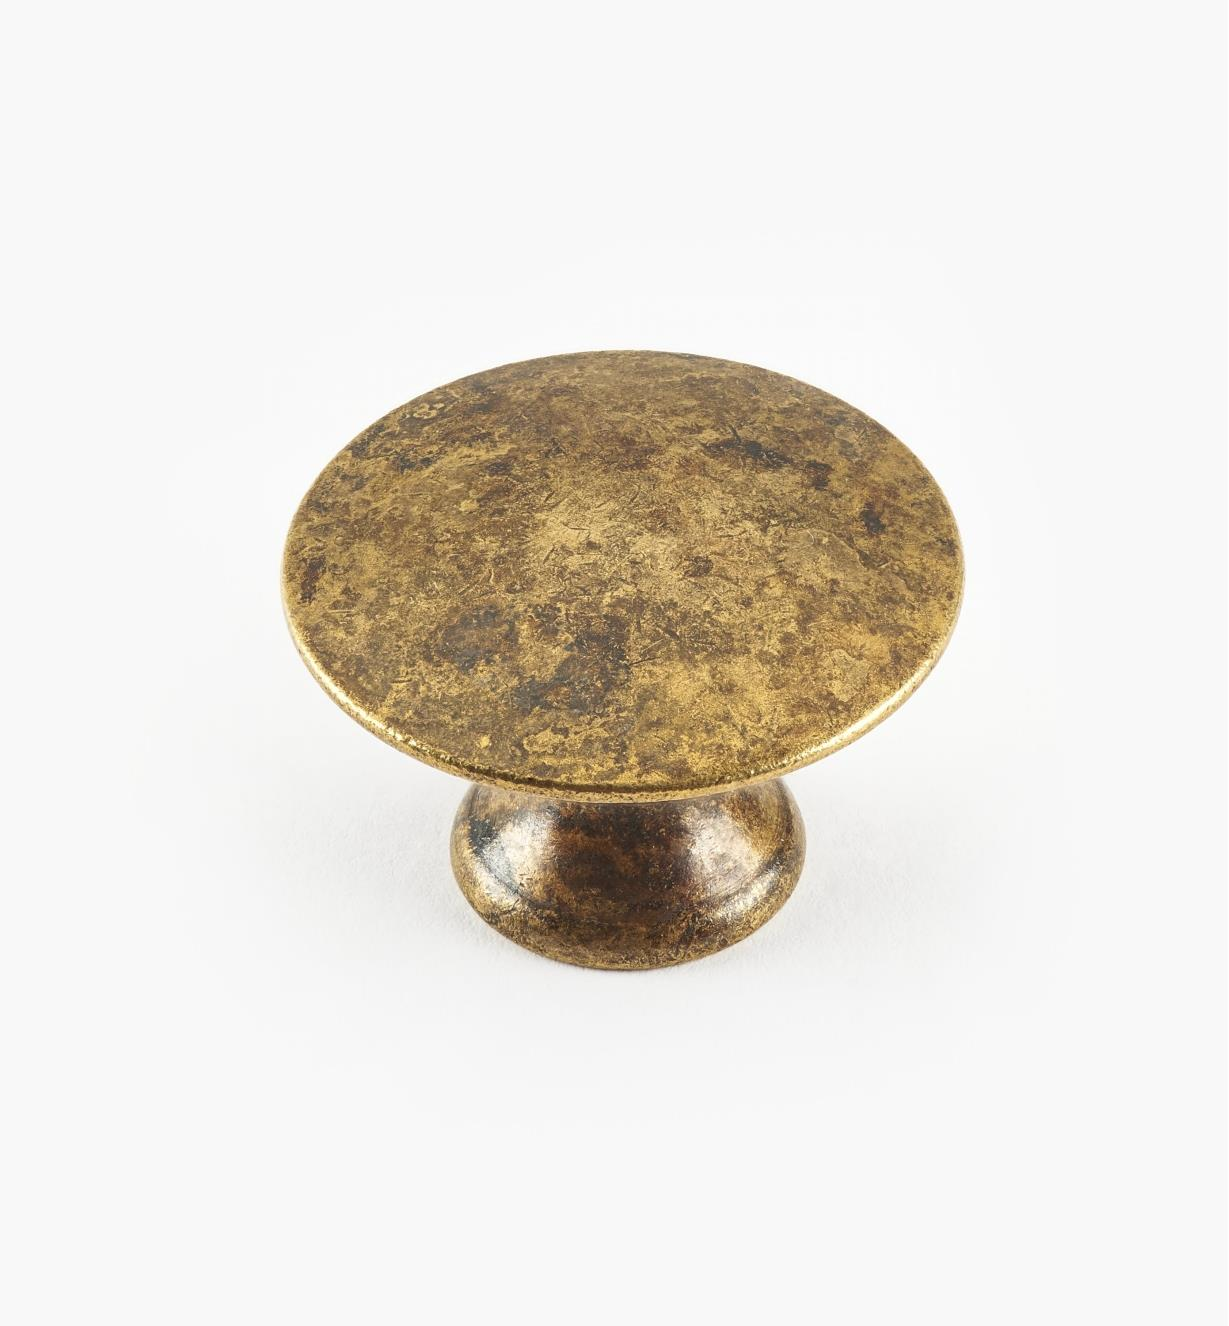 01A0328 - 28mm x 20mm Old Brass Plain Knob